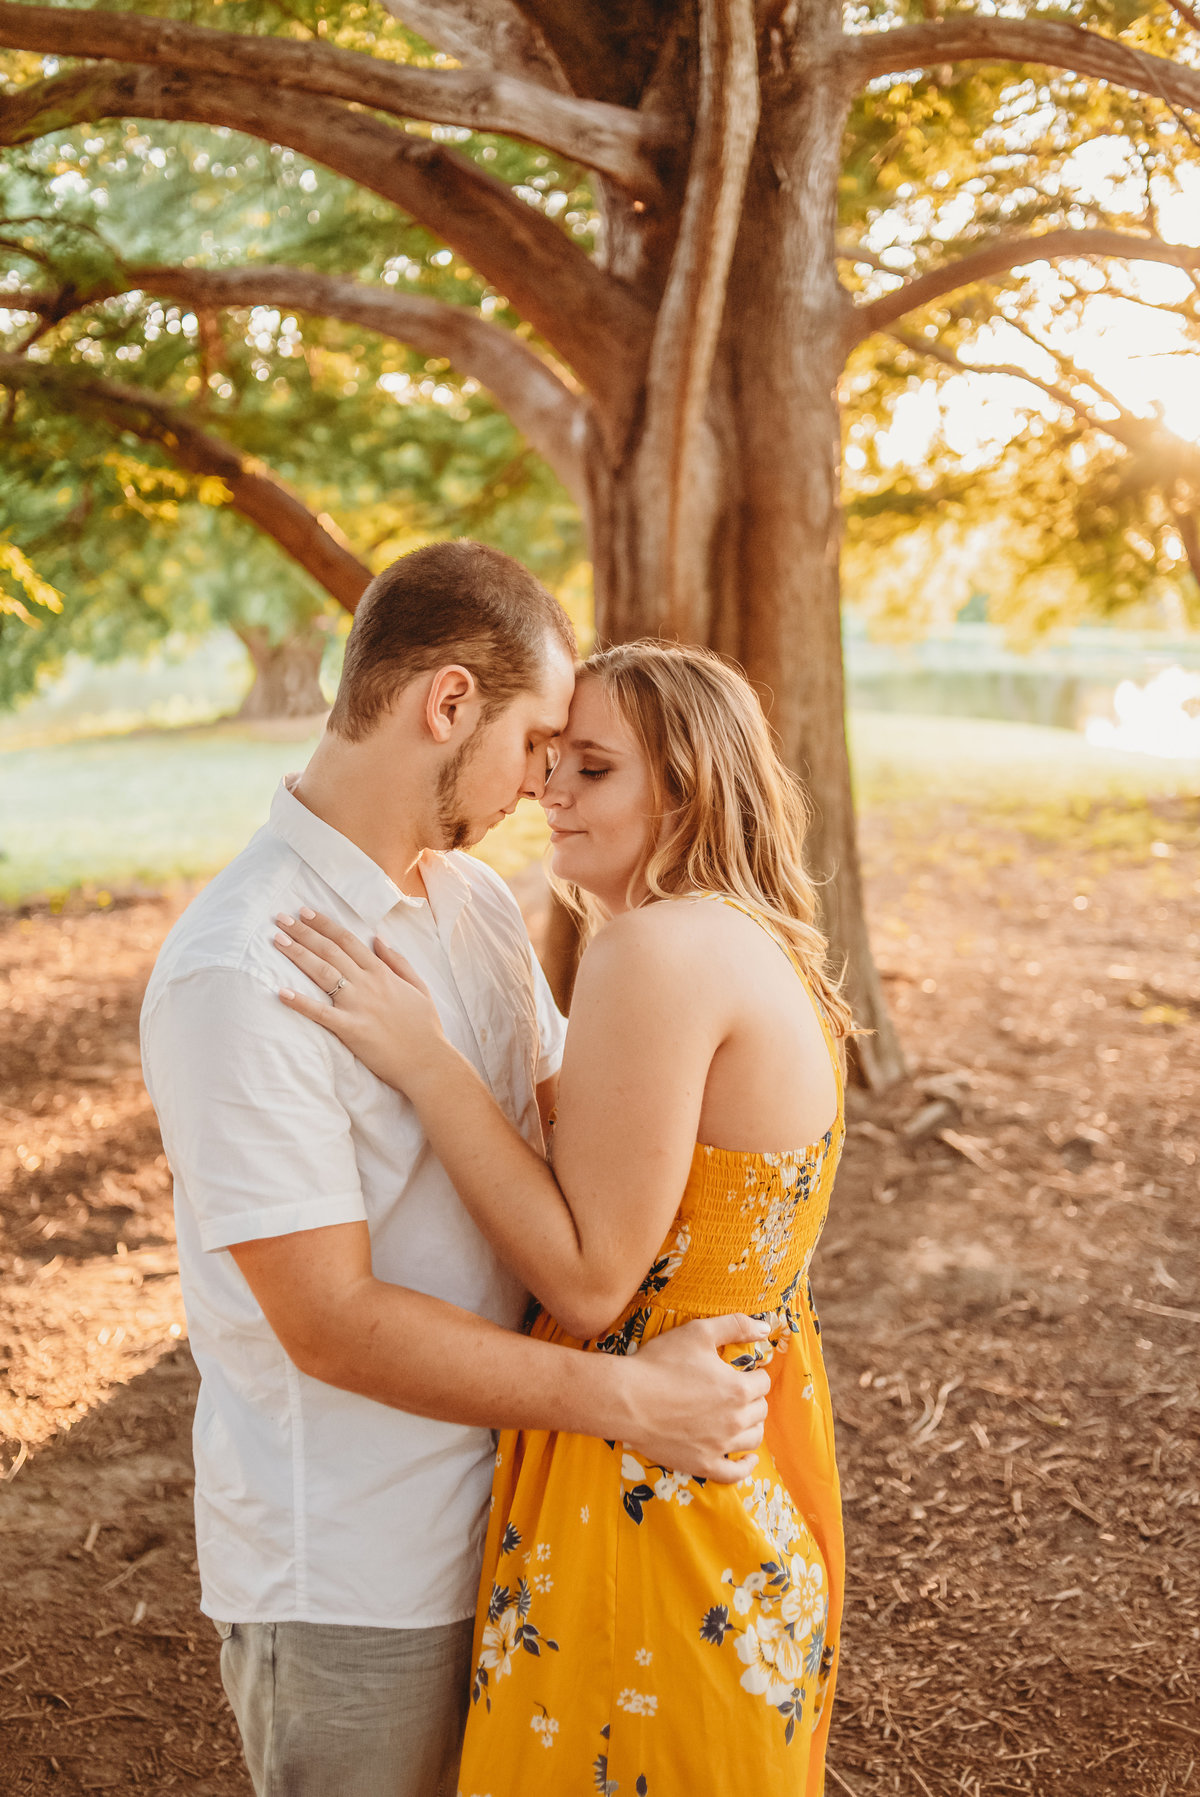 Kaitlyn+Ryan_Kansas Engagement Session_Shawnee Mission Park_Treolo Photography_31